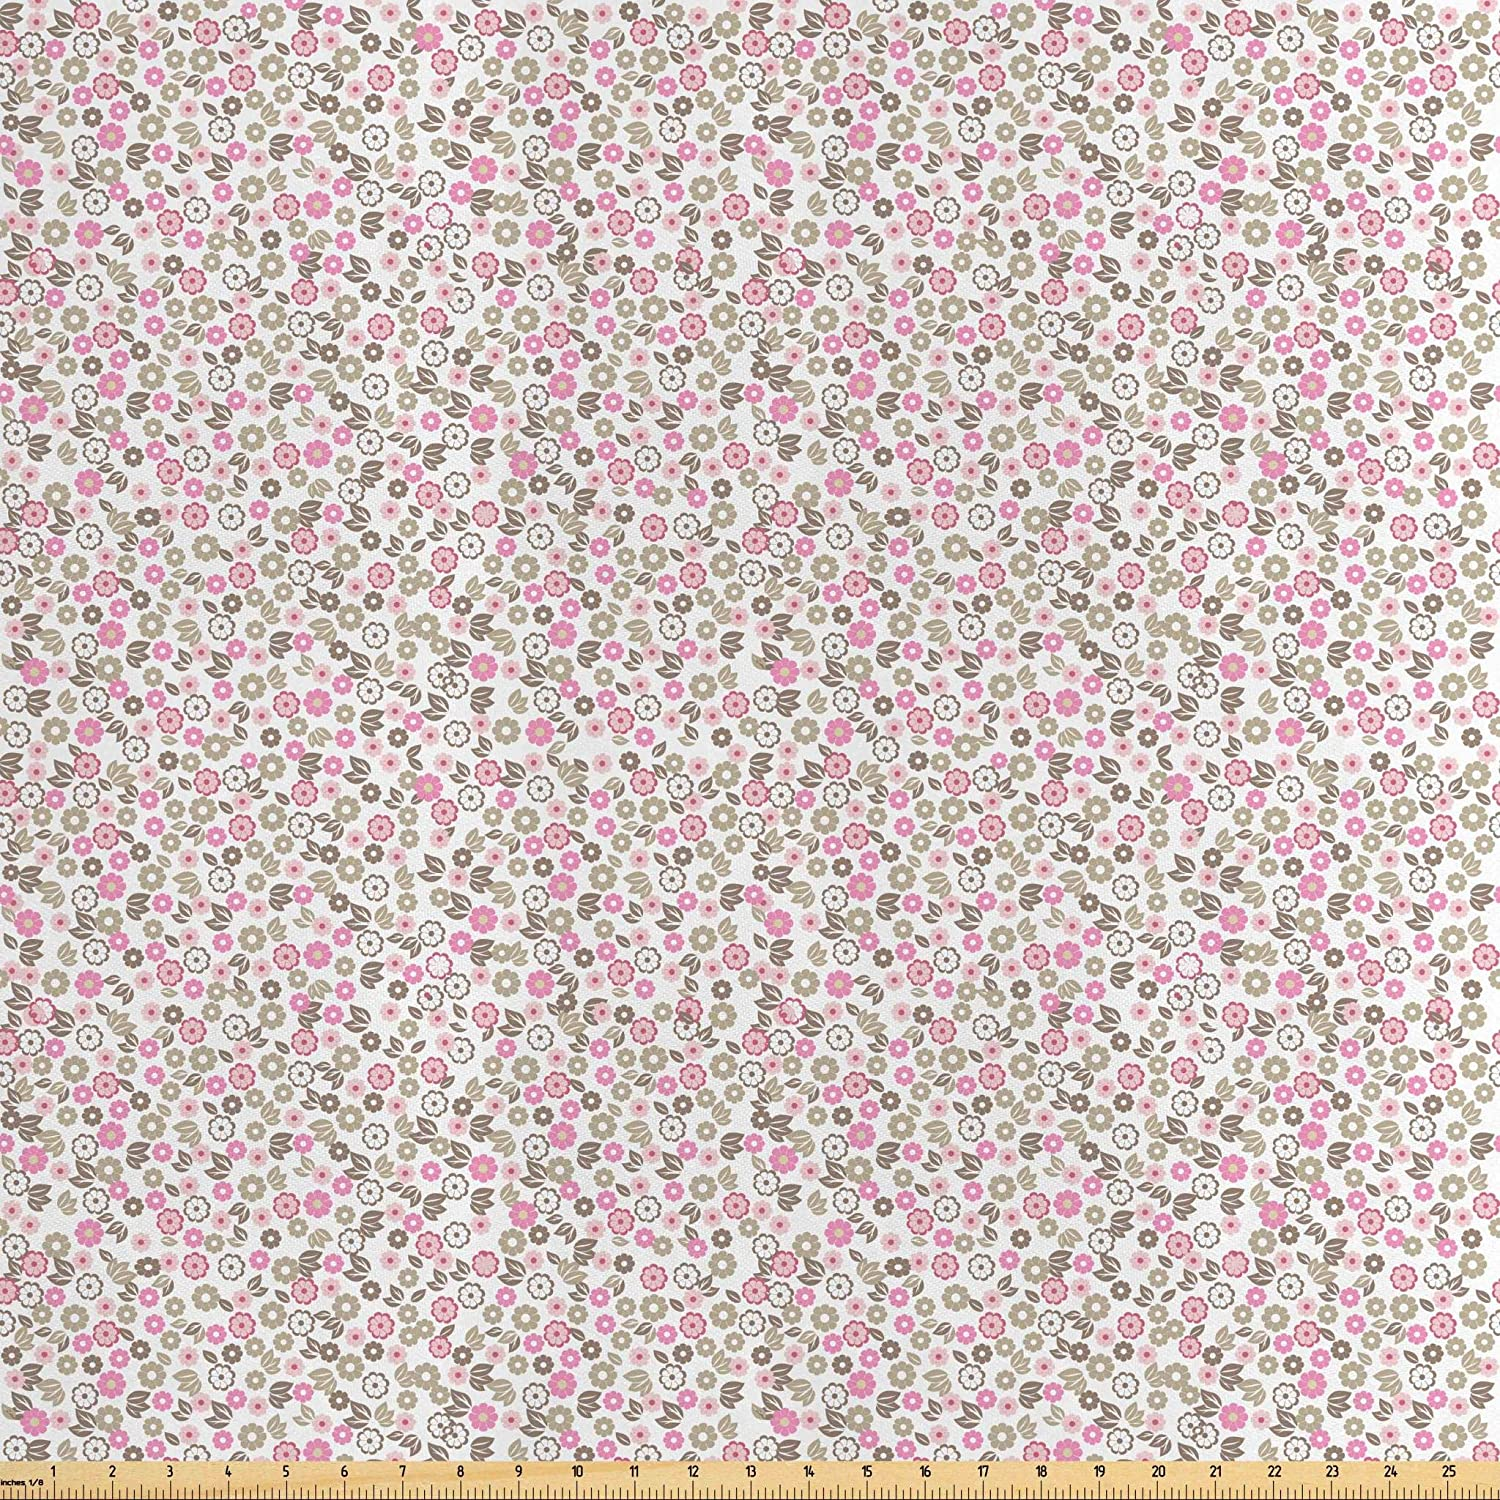 Lunarable Flower Fabric by The Yard, Autumn in The Countryside Wildflowers Herbs Botany Chamomile Design, Decorative Satin Fabric for Home Textiles and Crafts, 1 Yard, Pink Reseda Green